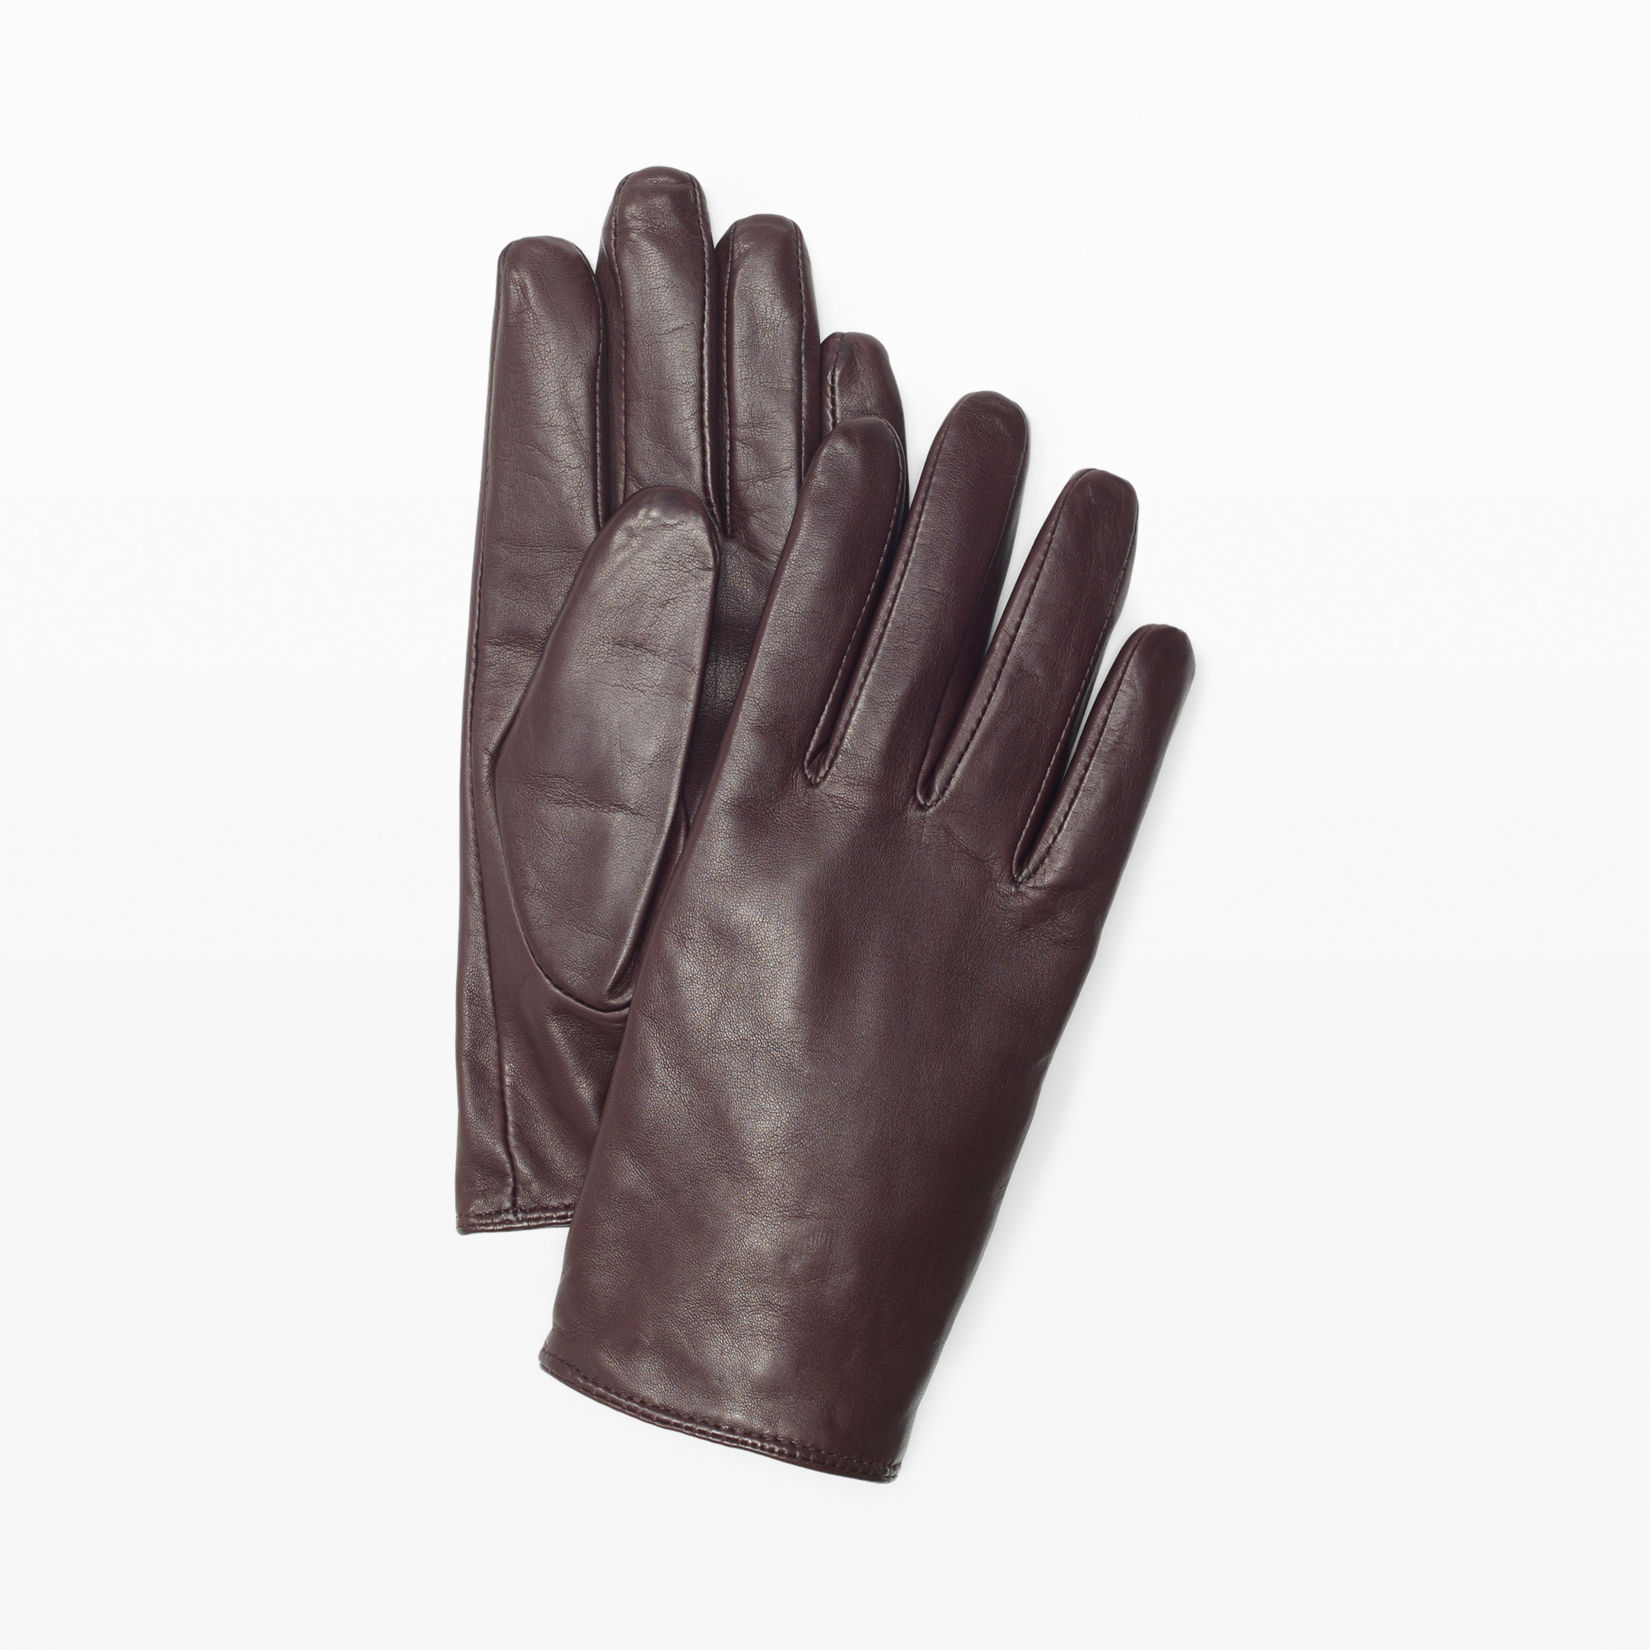 Blue leather gloves ladies uk - Women Claudia Leather Glove Club Monaco